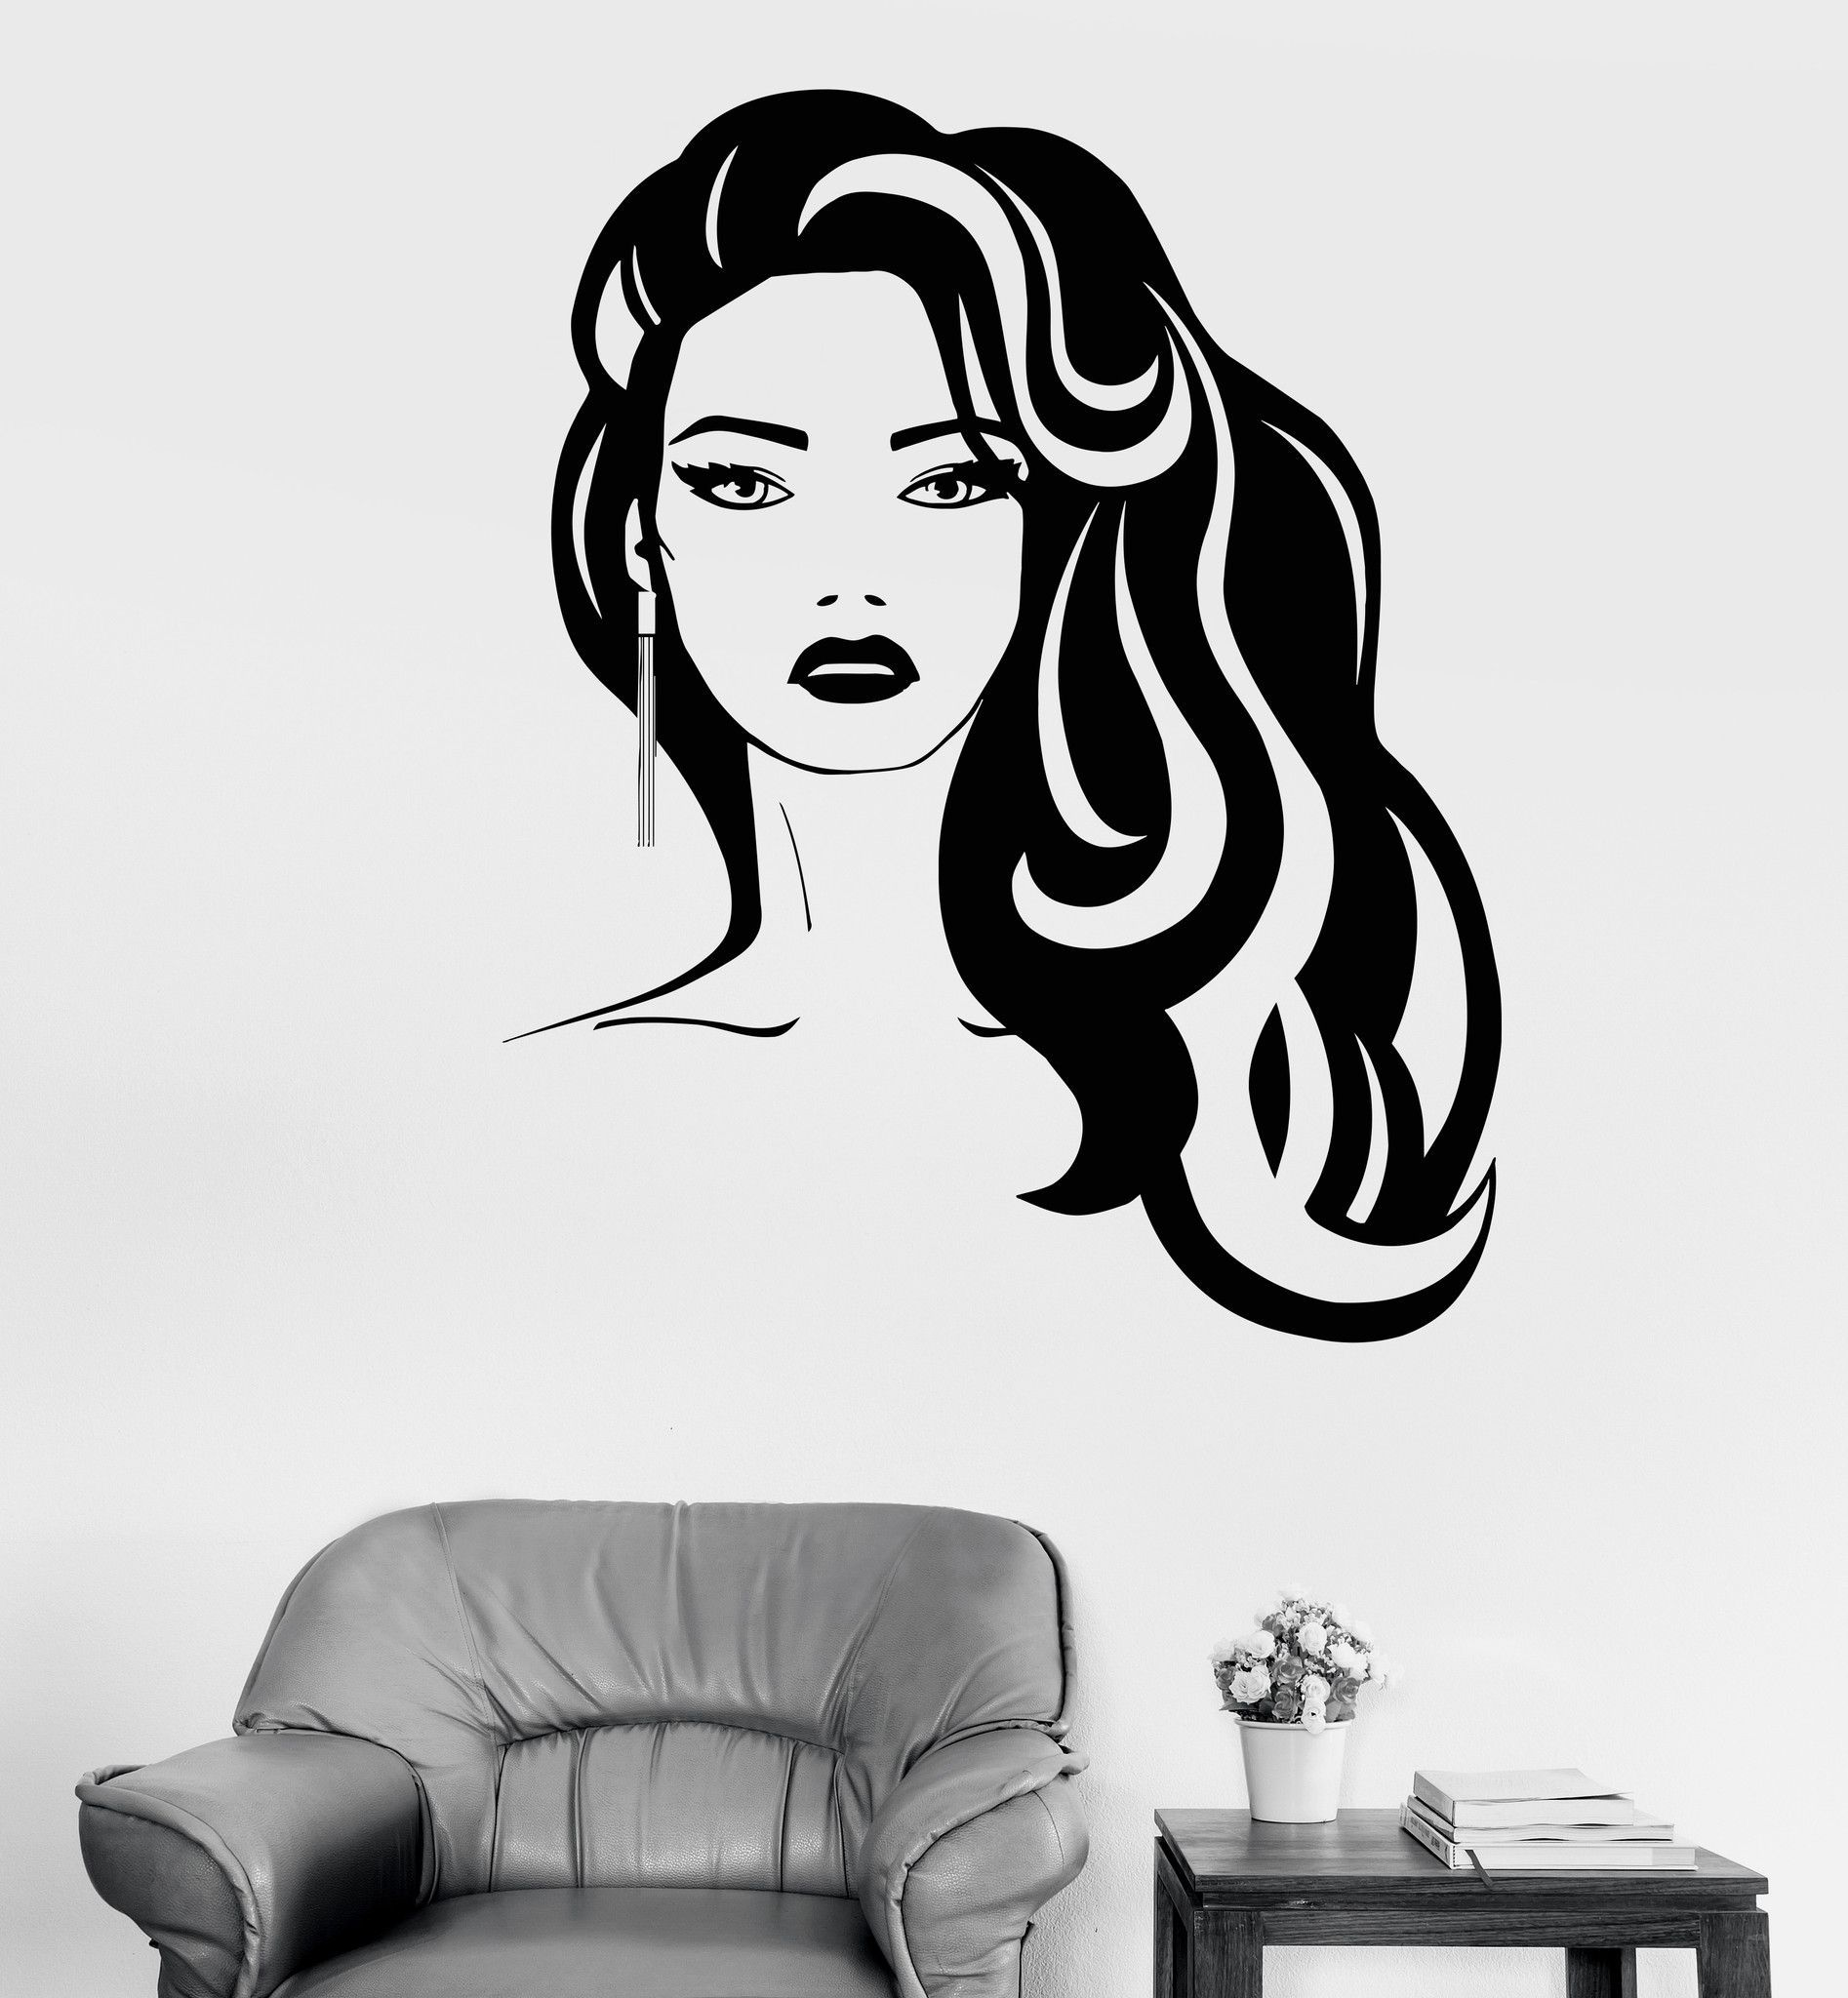 Vinyl Wall Decal Beauty Hairdressing Salon Fashion Girl Hair - Window stickers for businessunisex hair scissors vinyl window sticker decal salon